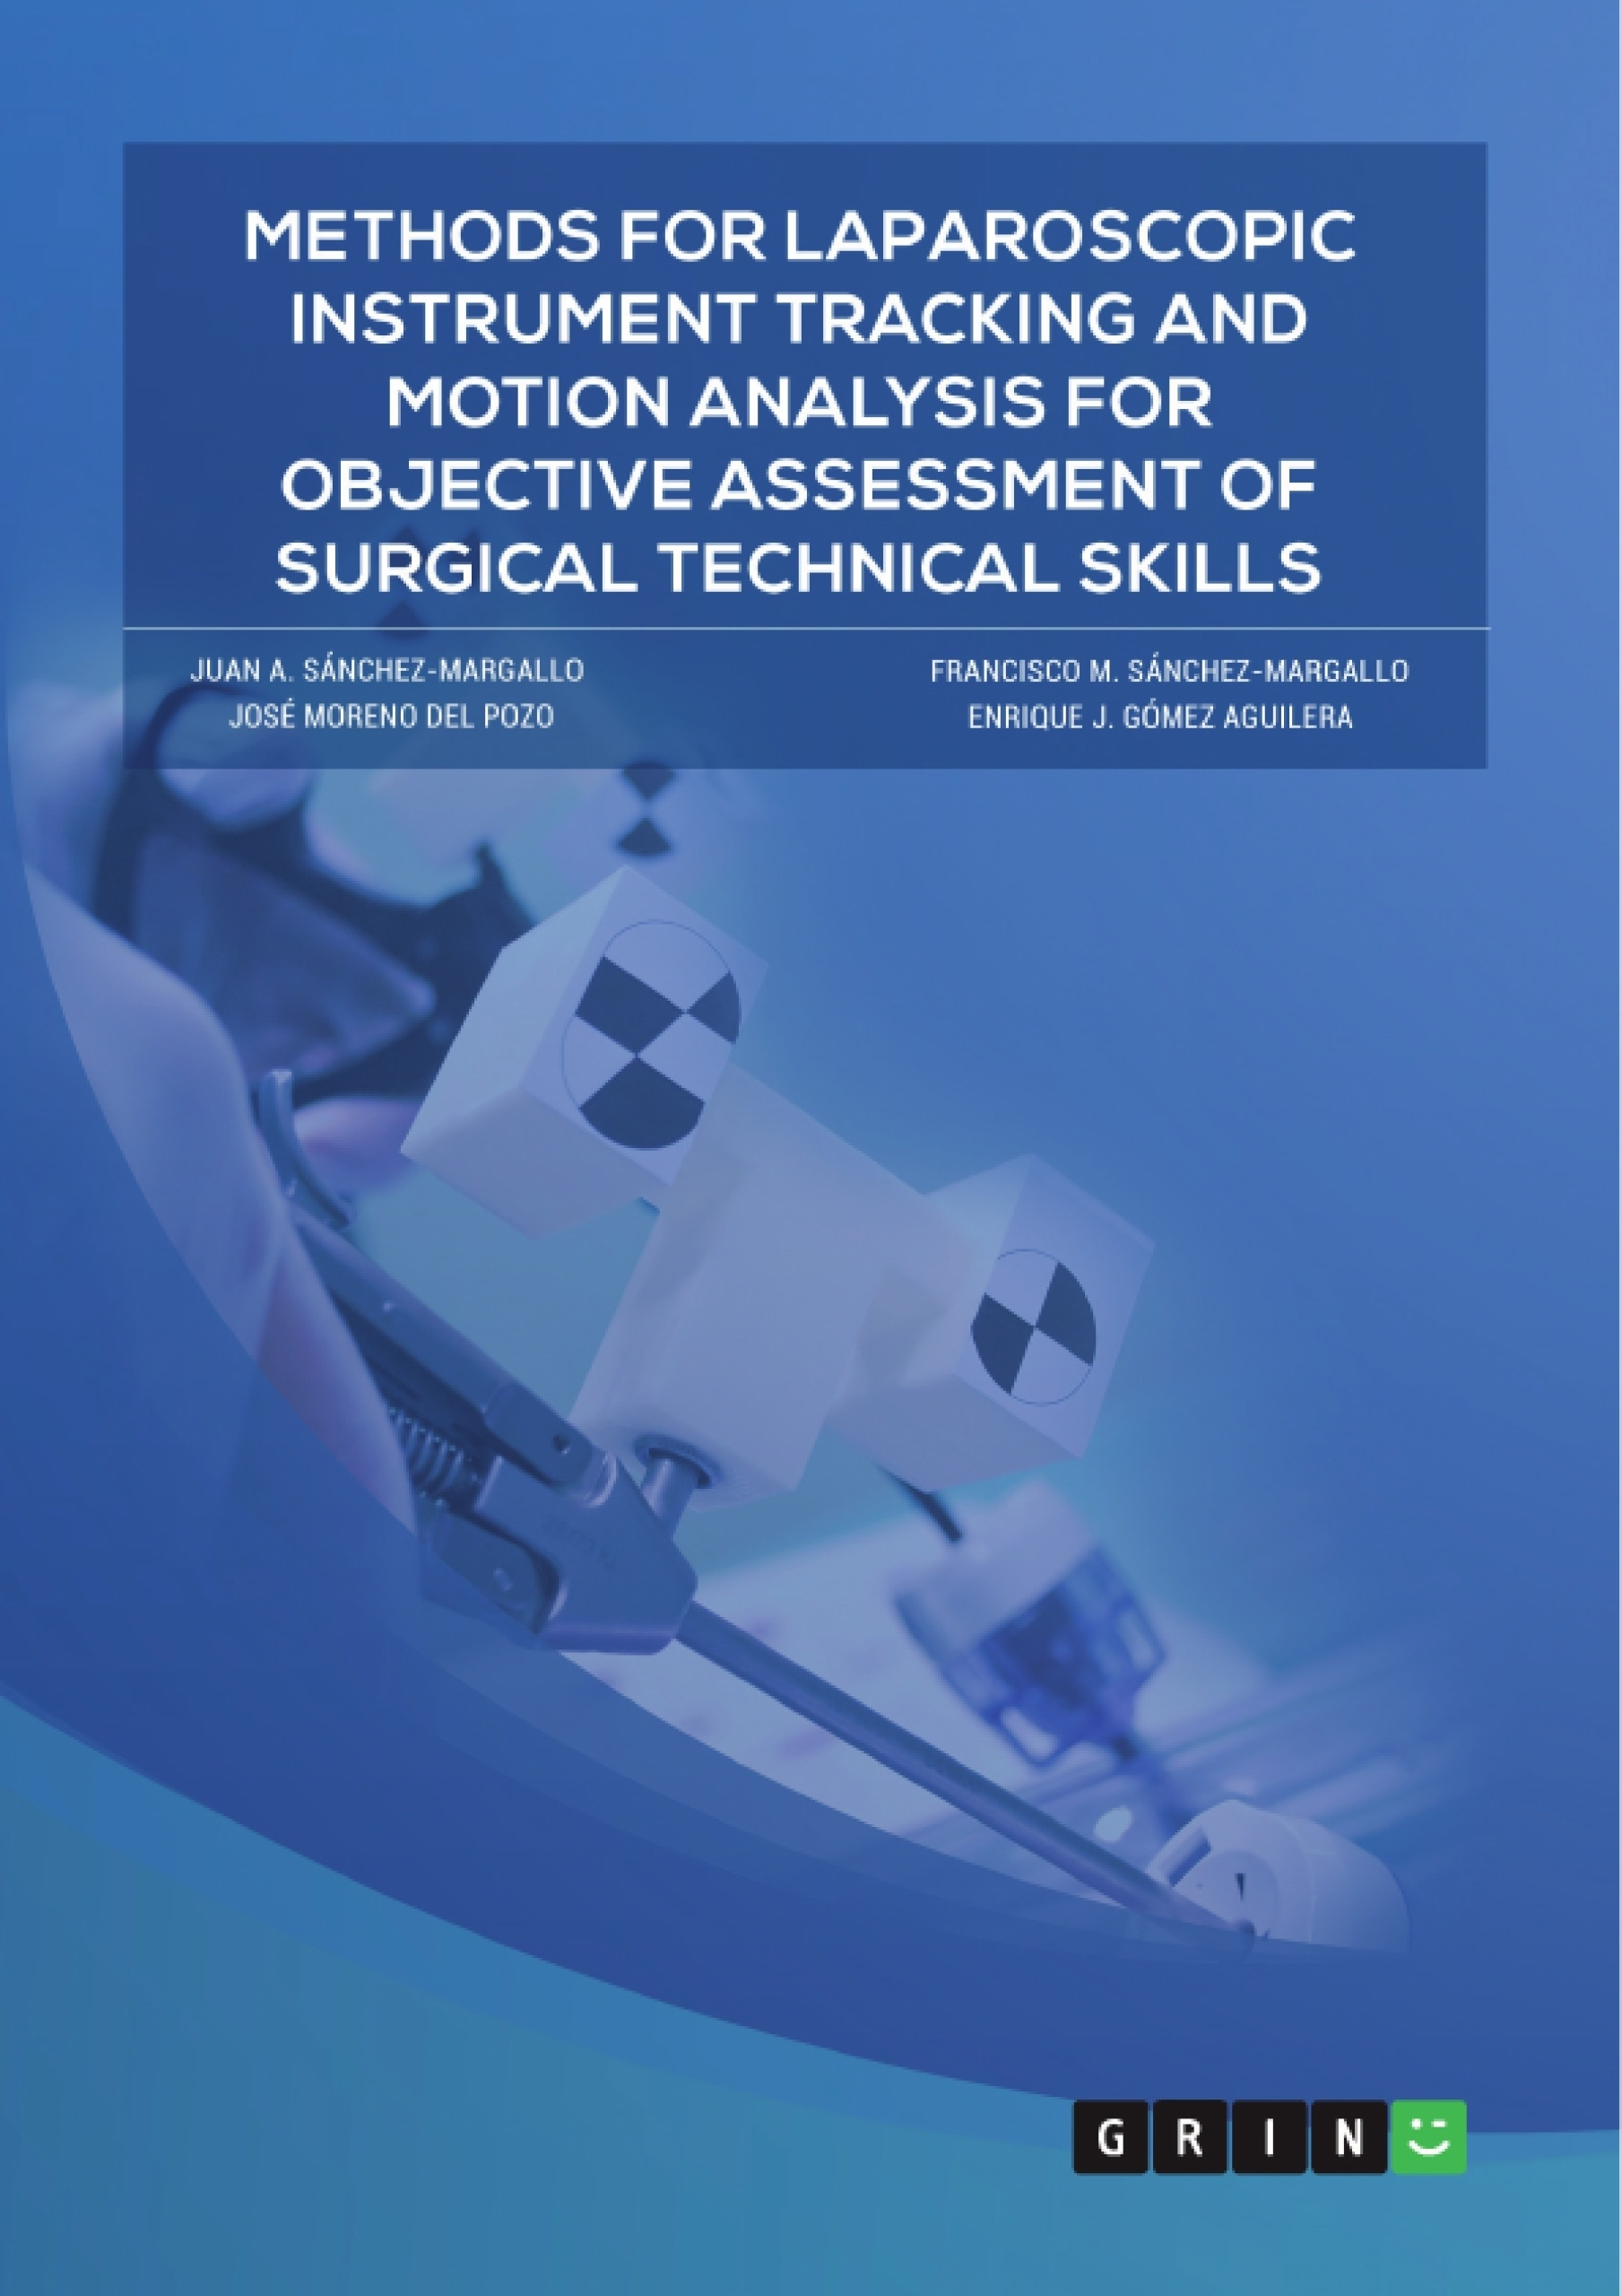 Title: Methods for laparoscopic instrument tracking and motion analysis for objective assessment of surgical technical skills